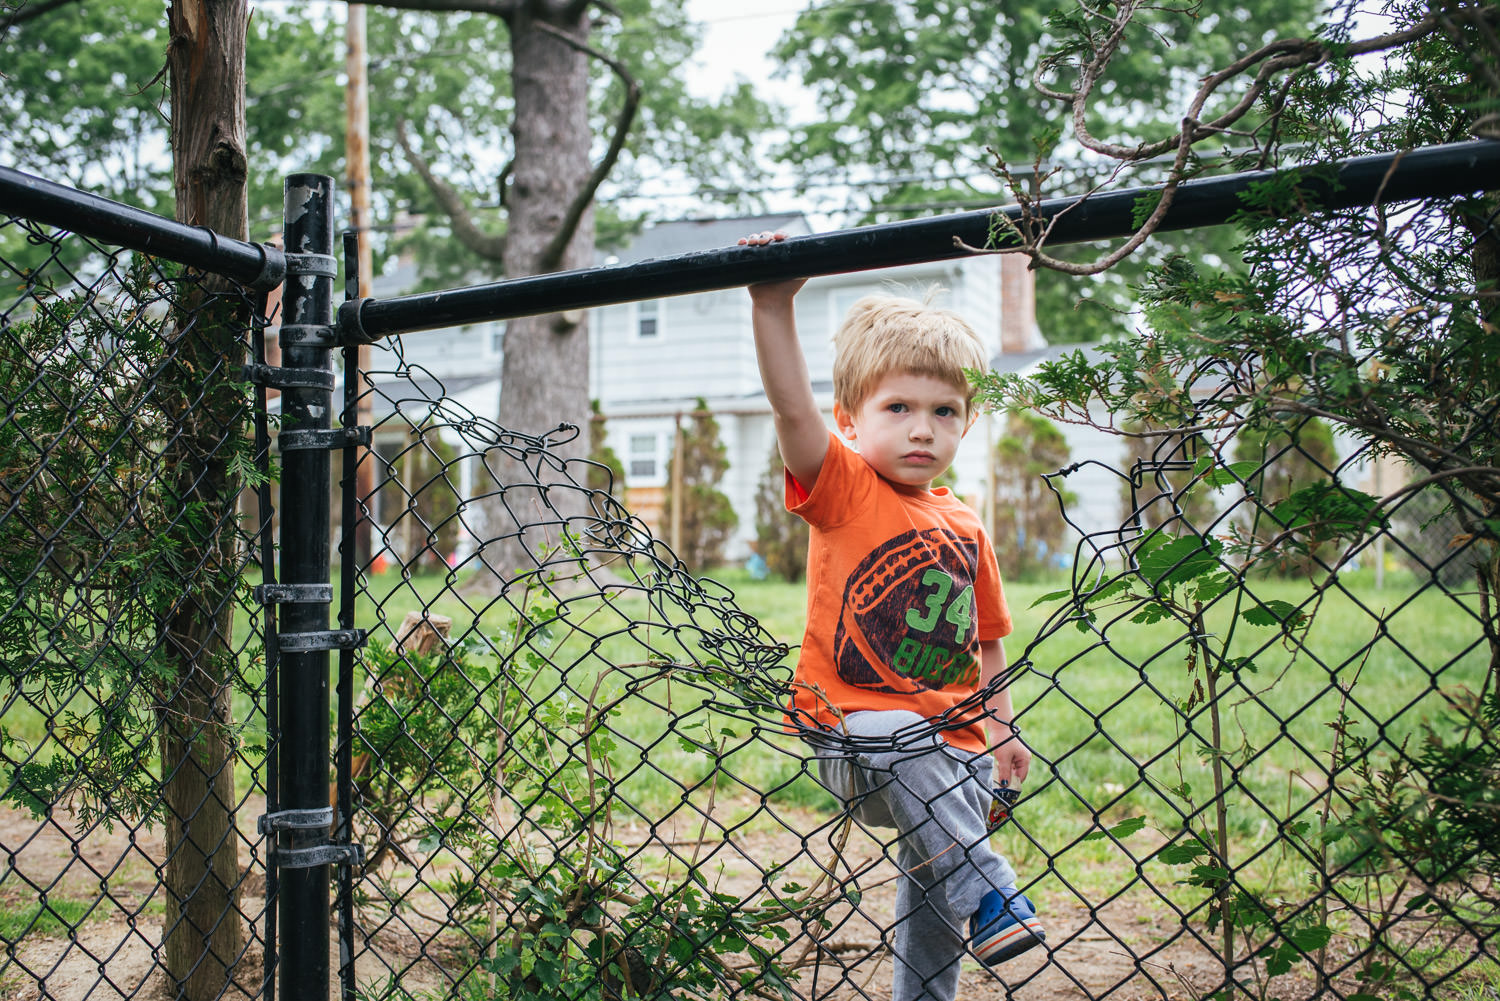 Little boy looks grumpy as he starts to climb through a hole in a fence.